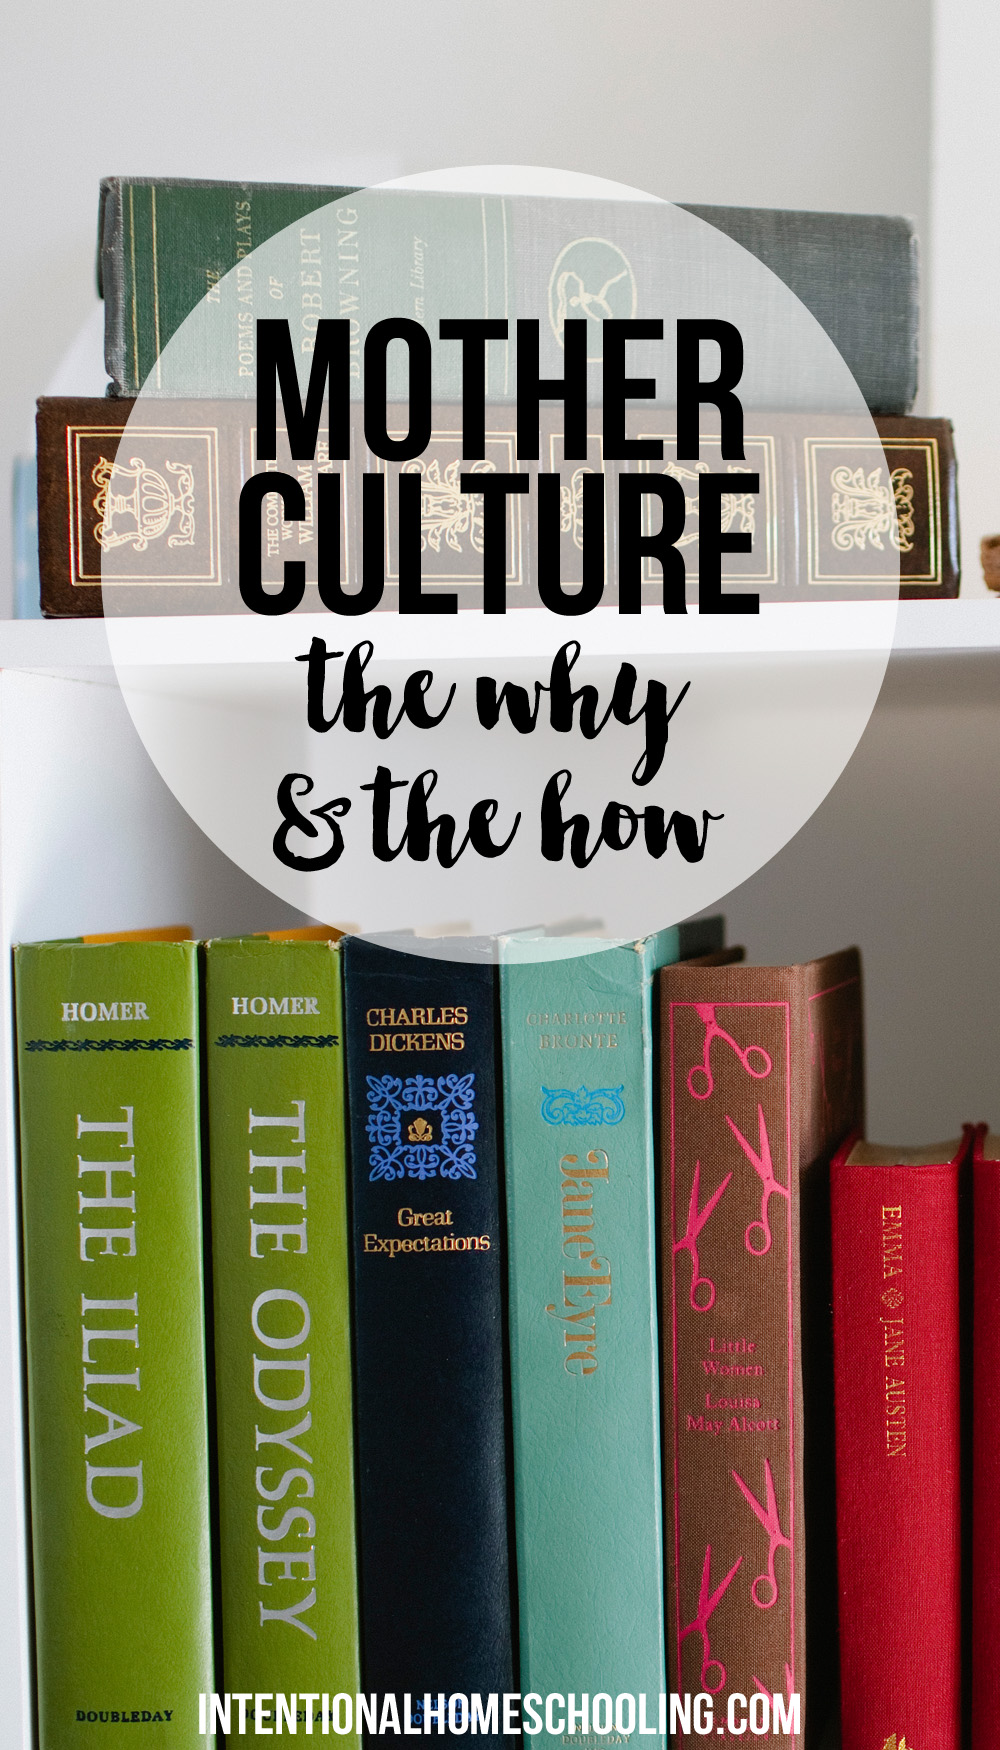 Mother Culture - the why and the how. A great read for every homeschooling (and non-homeschooling) mom!